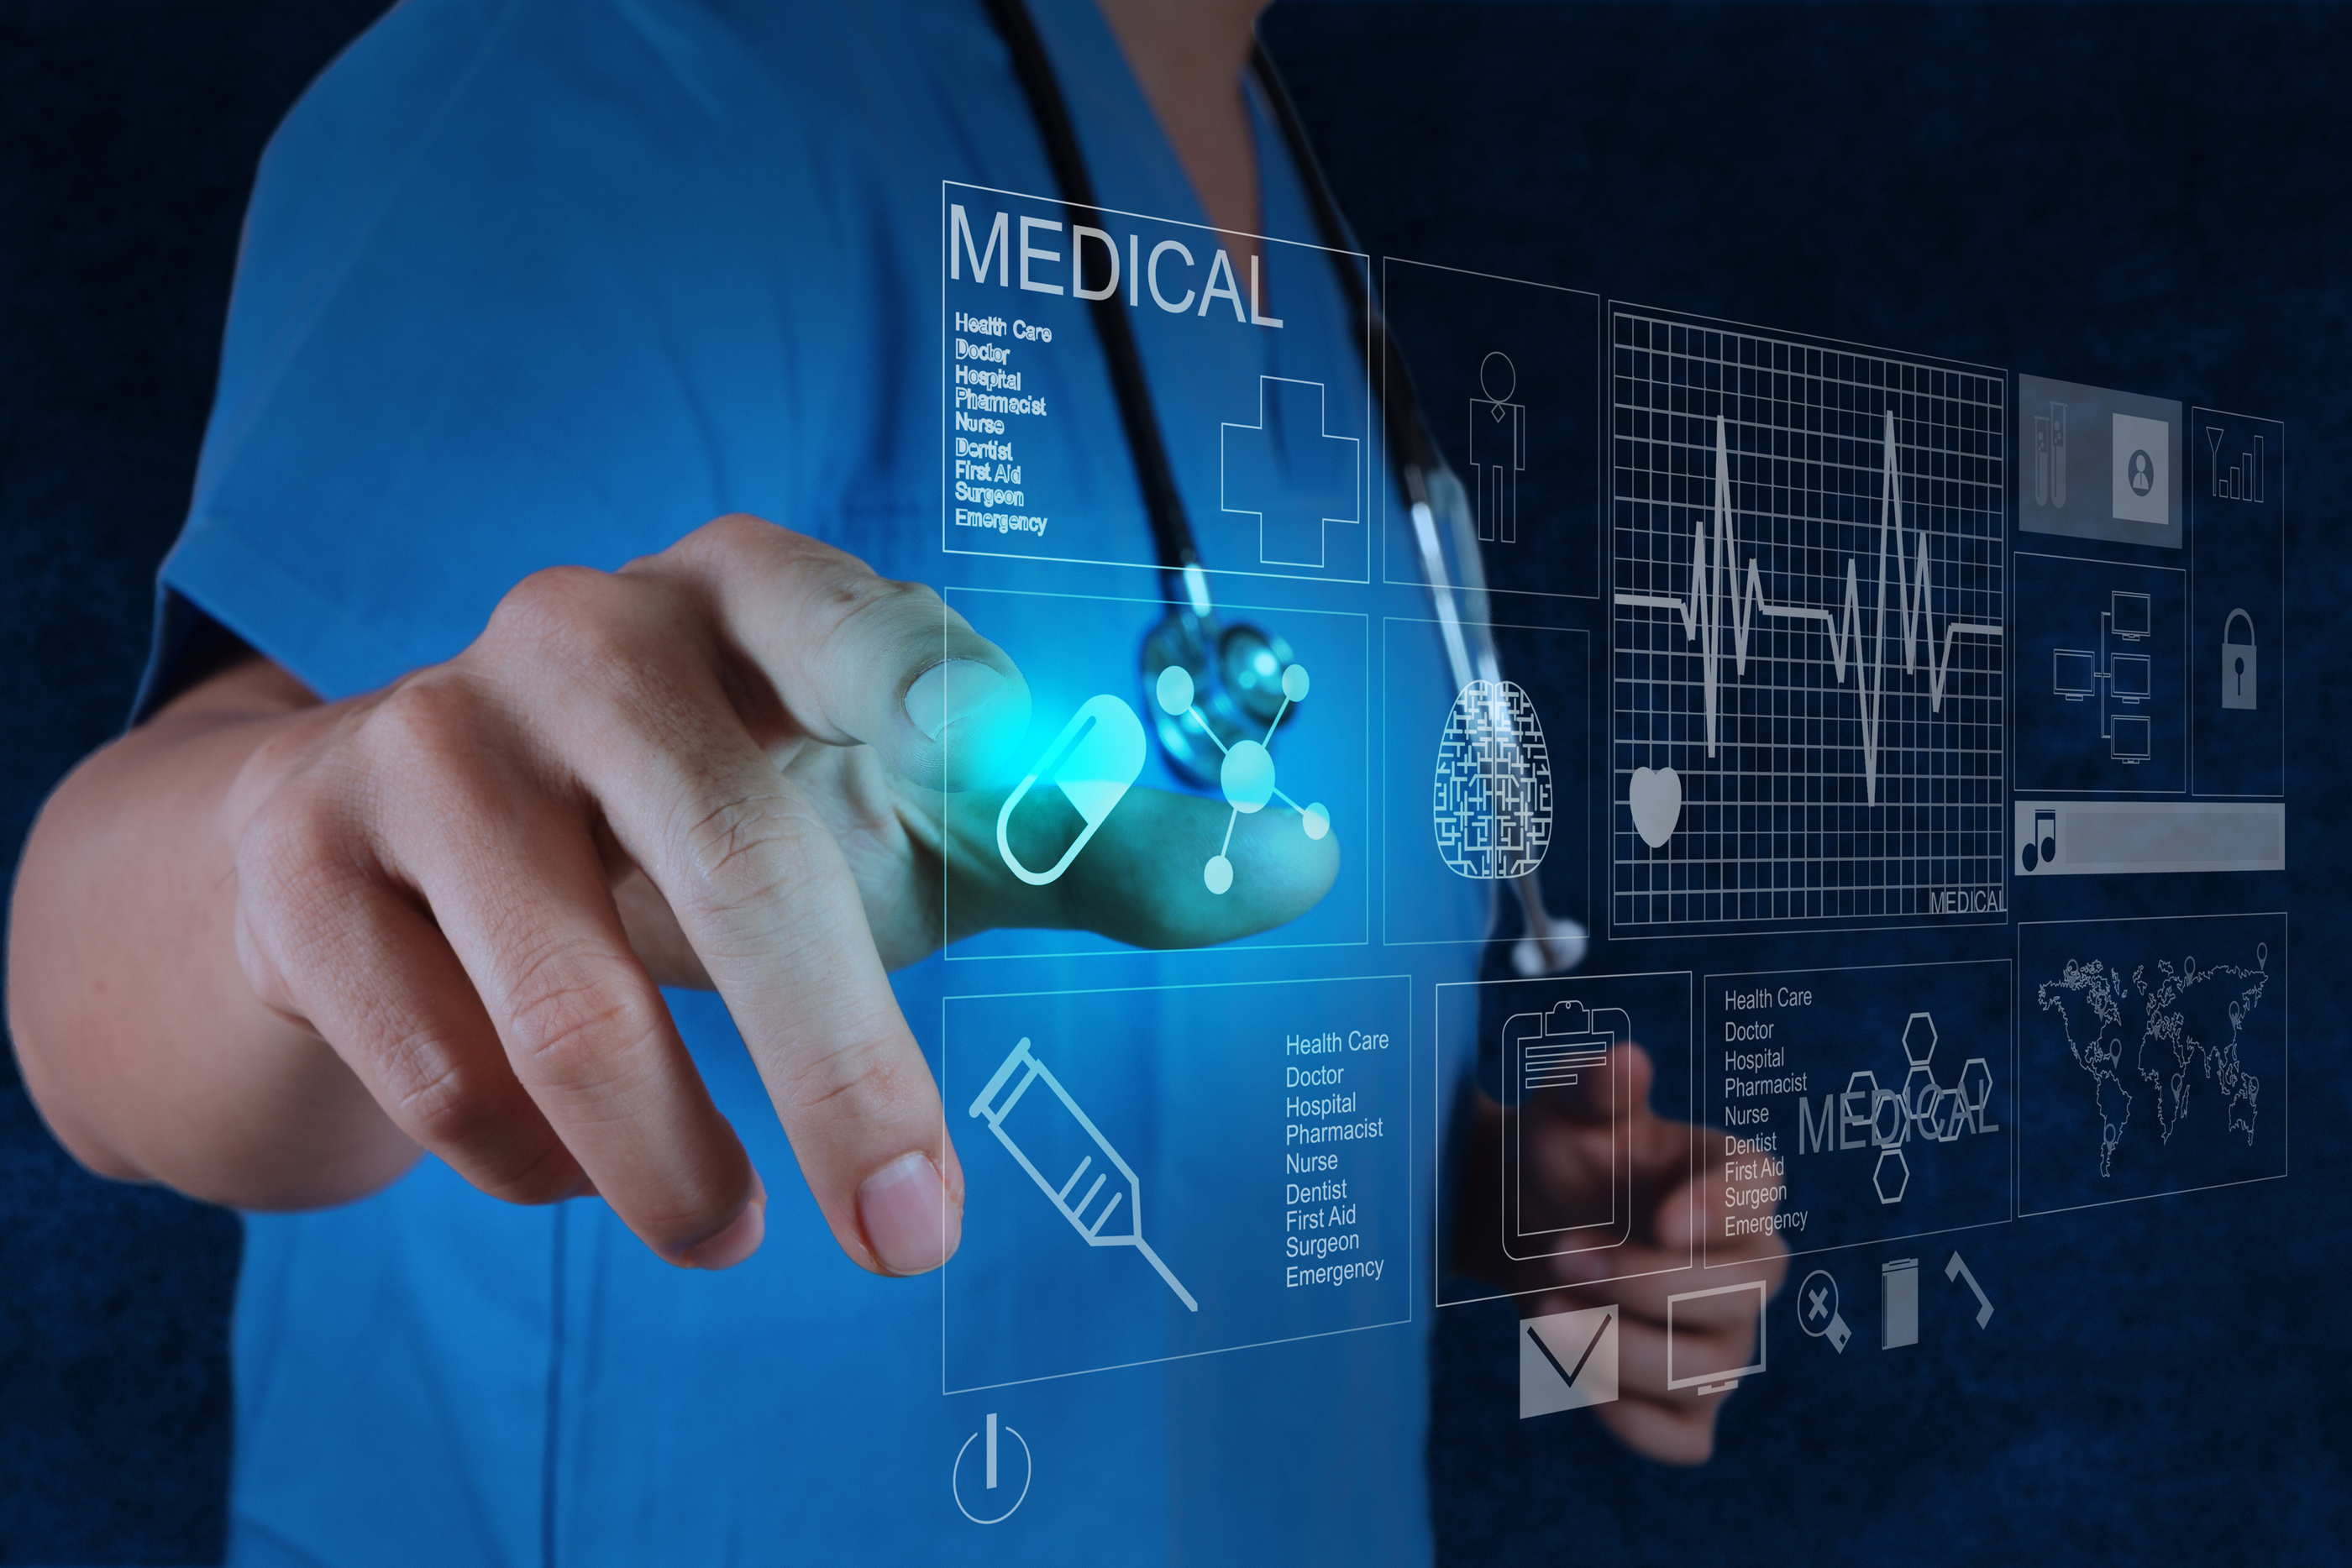 the development of patient classification systems pcs in the medicine Conrad kobel drg systems in europe (pcs) description the development of european patient classification systems - drg systems in europe.